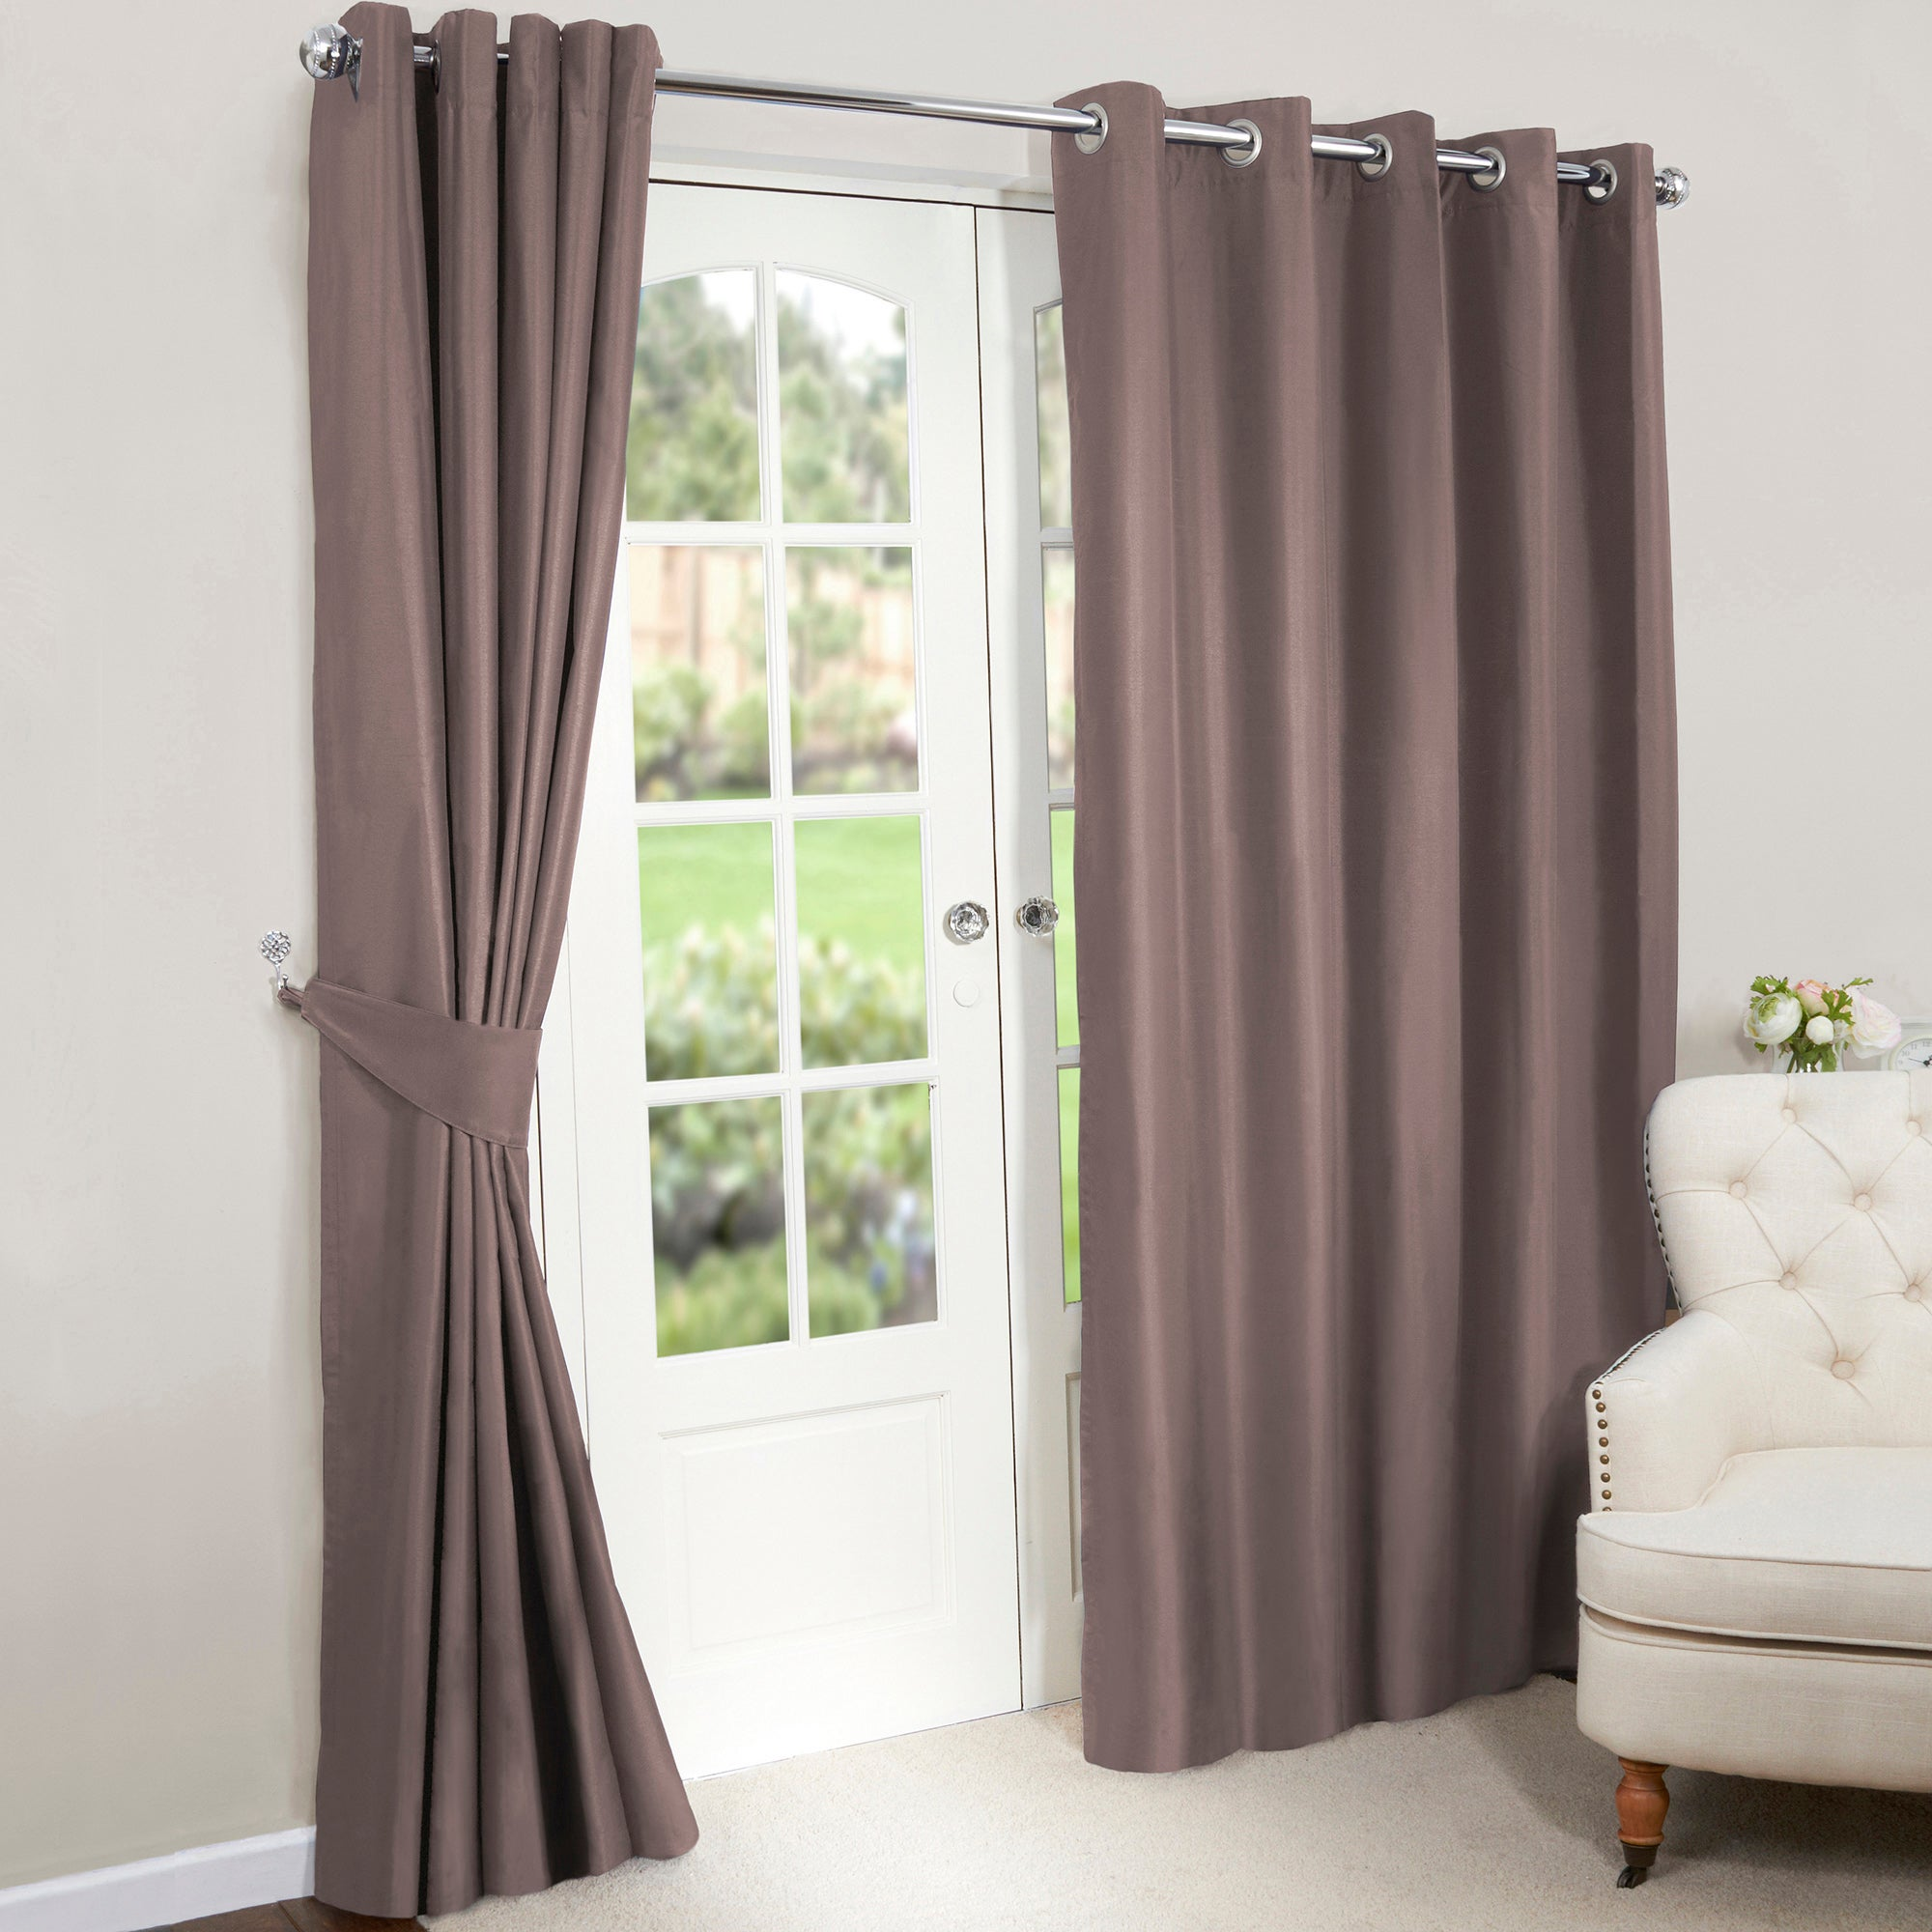 Gold Nova Blackout Lined Eyelet Curtains